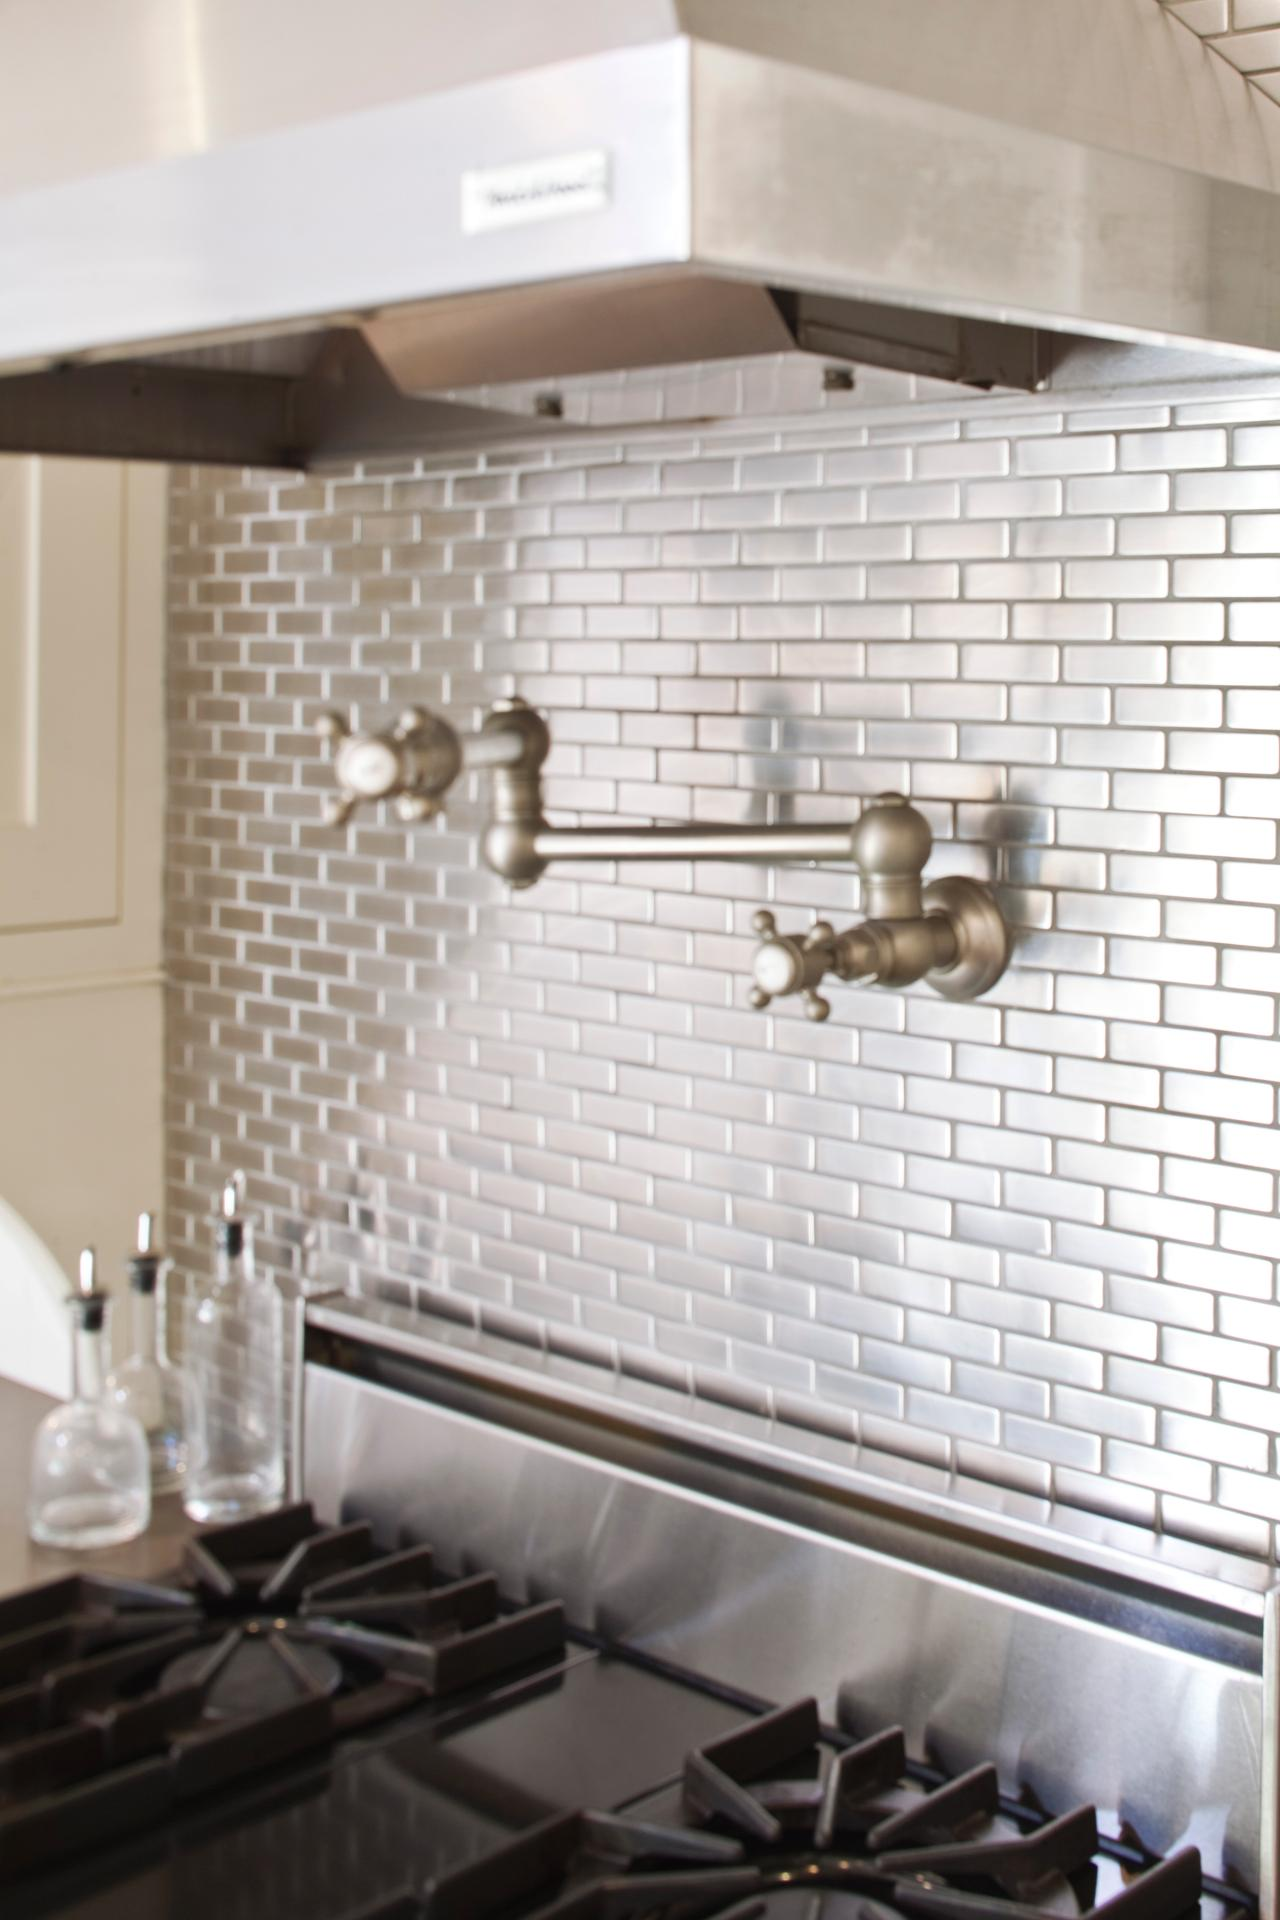 Make a splash with these backsplash designs bkc kitchen and bath - Bathroom subway tile backsplash ...